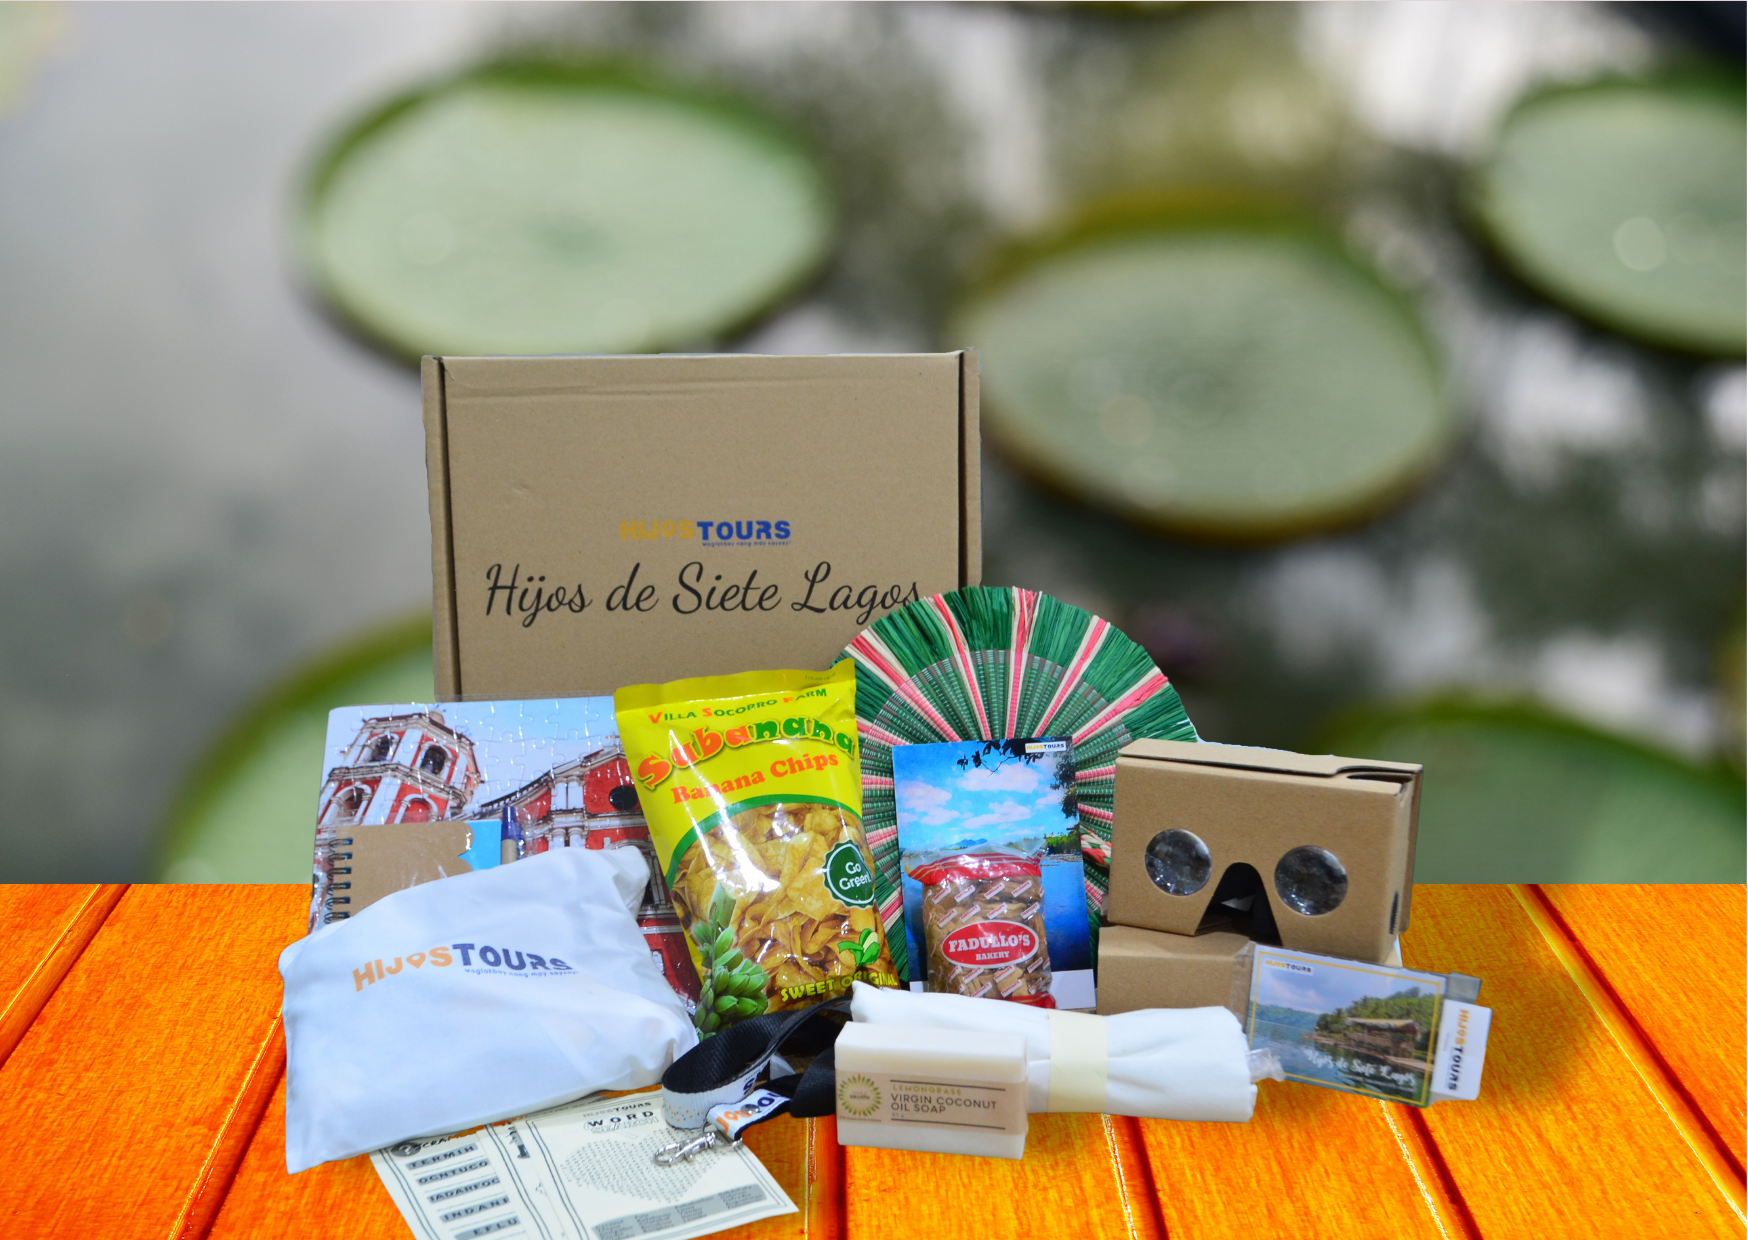 Travel box from San Pablo Laguna with snacks and souvenirs